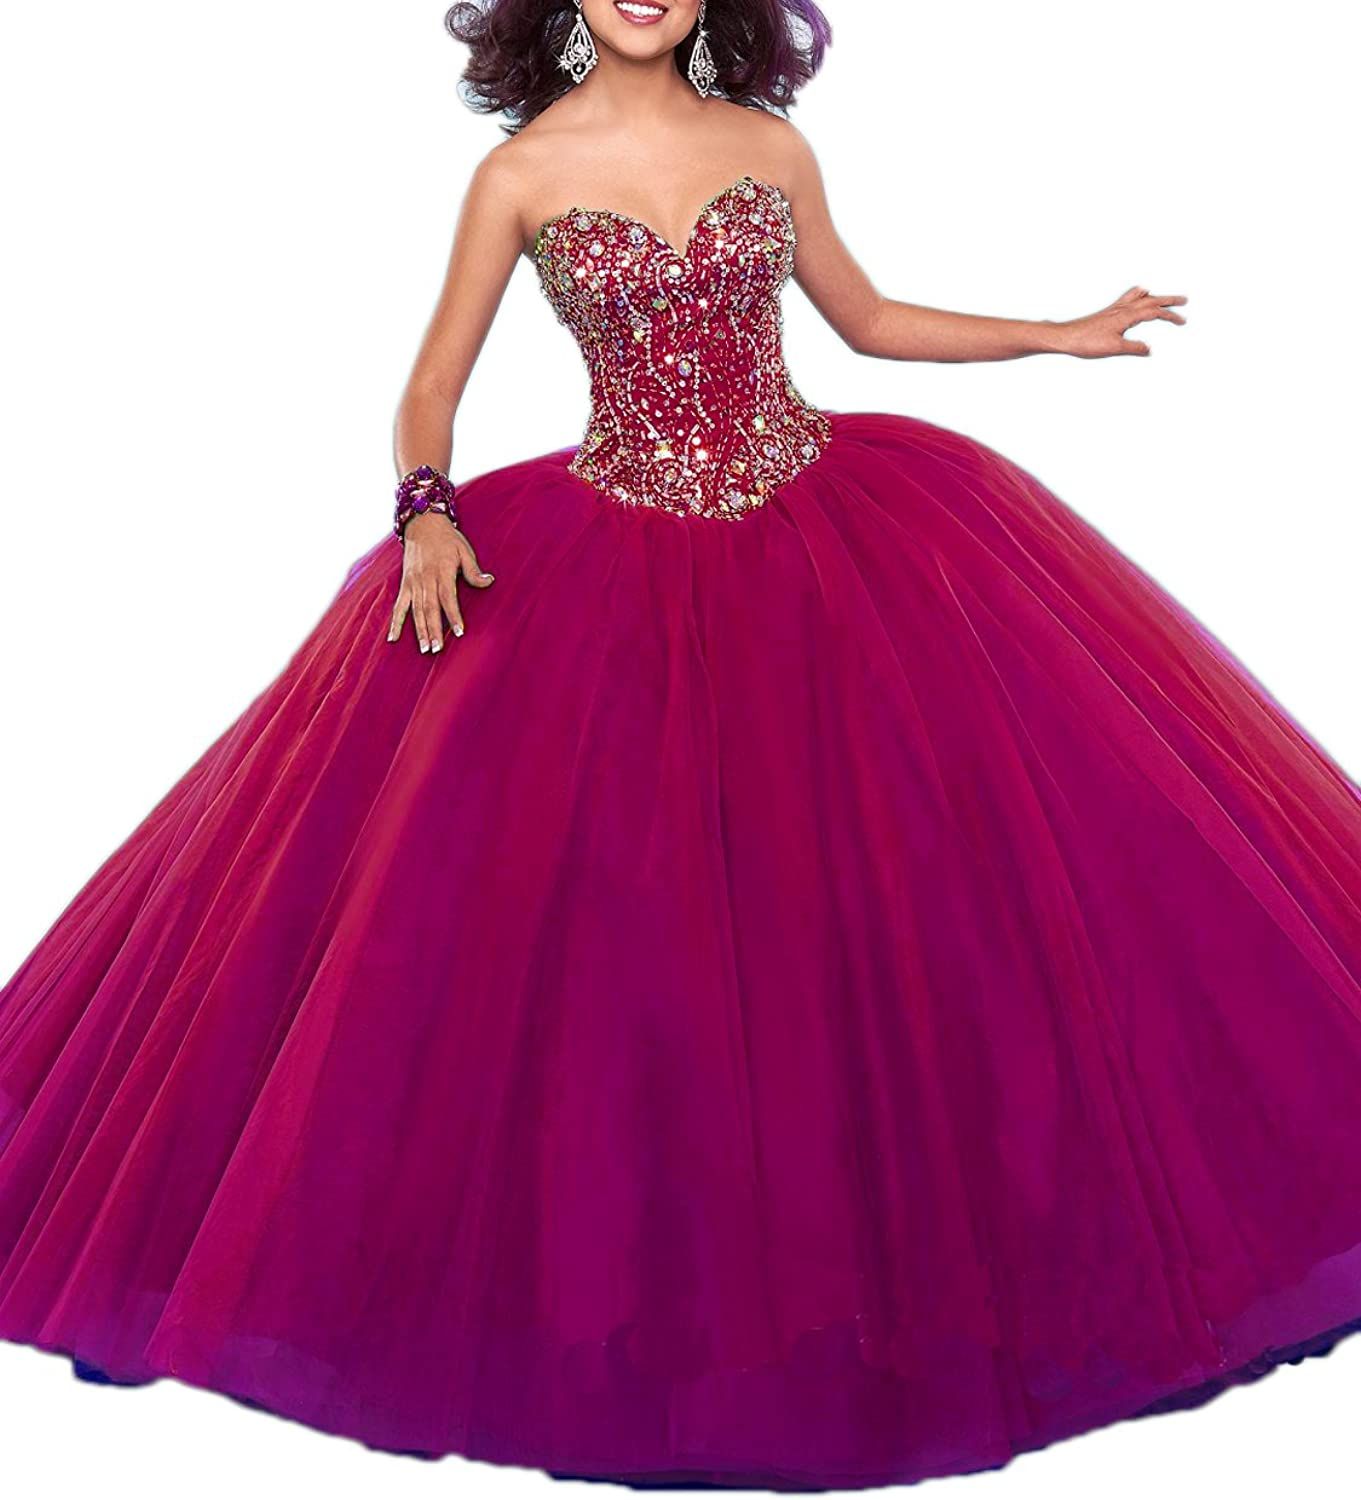 Beilite Sweetheart Crystals Tulle Sweet 16 Quinceanera Dress